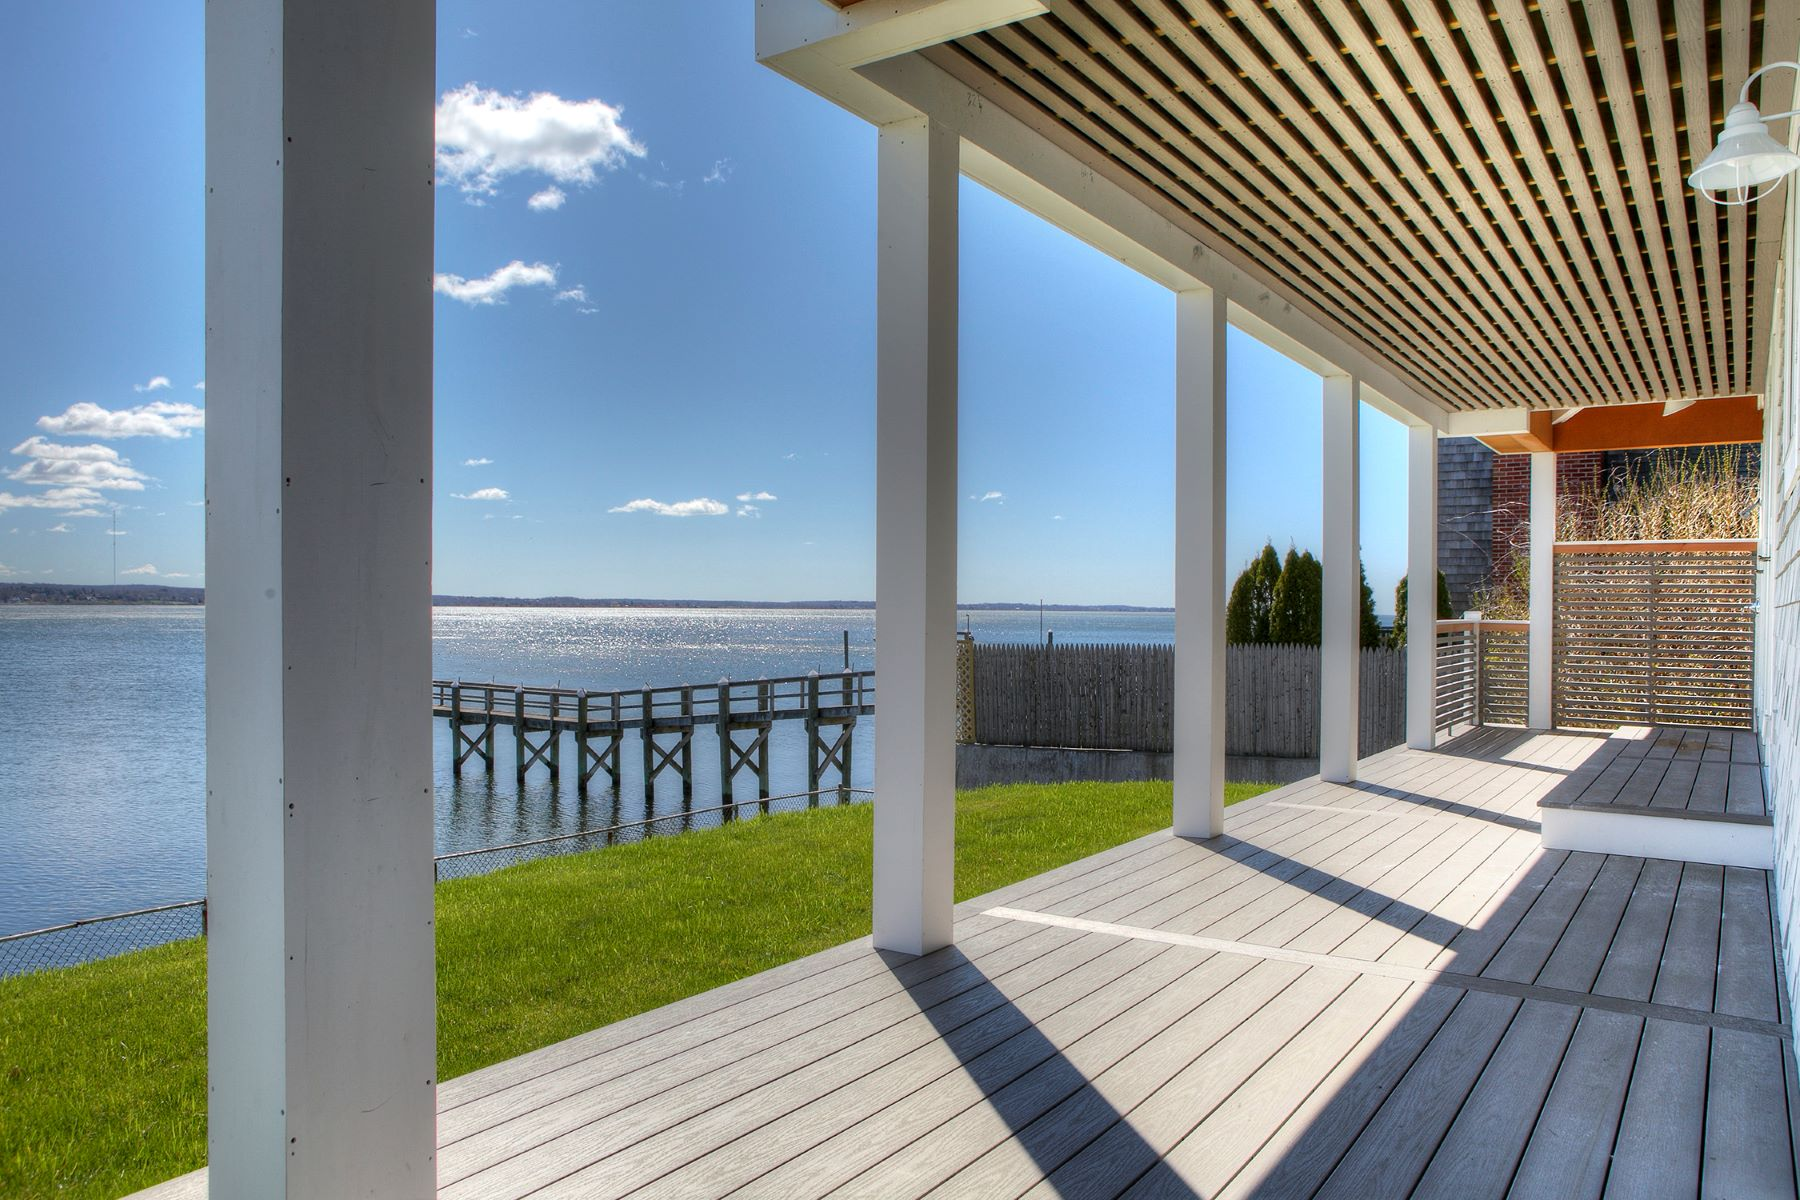 Additional photo for property listing at Waterfront Retreat 48 Aquidneck Avenue Portsmouth, Rhode Island 02871 United States